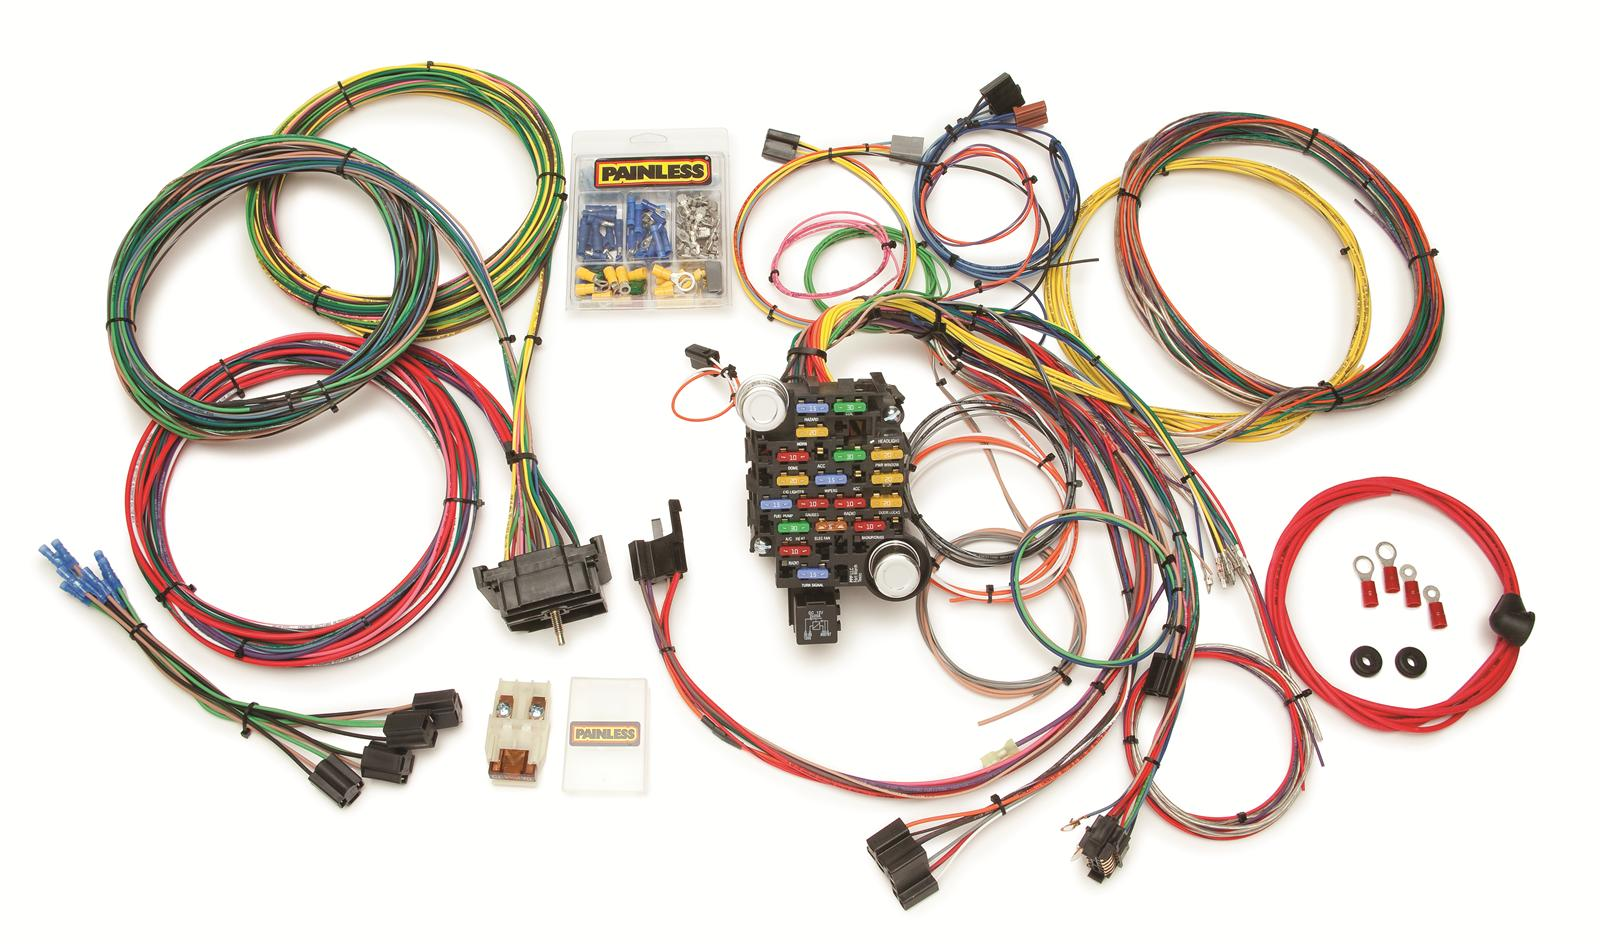 prf 10206_xl painless performance gmc chevy truck harnesses 10206 free wiring harness parts at virtualis.co